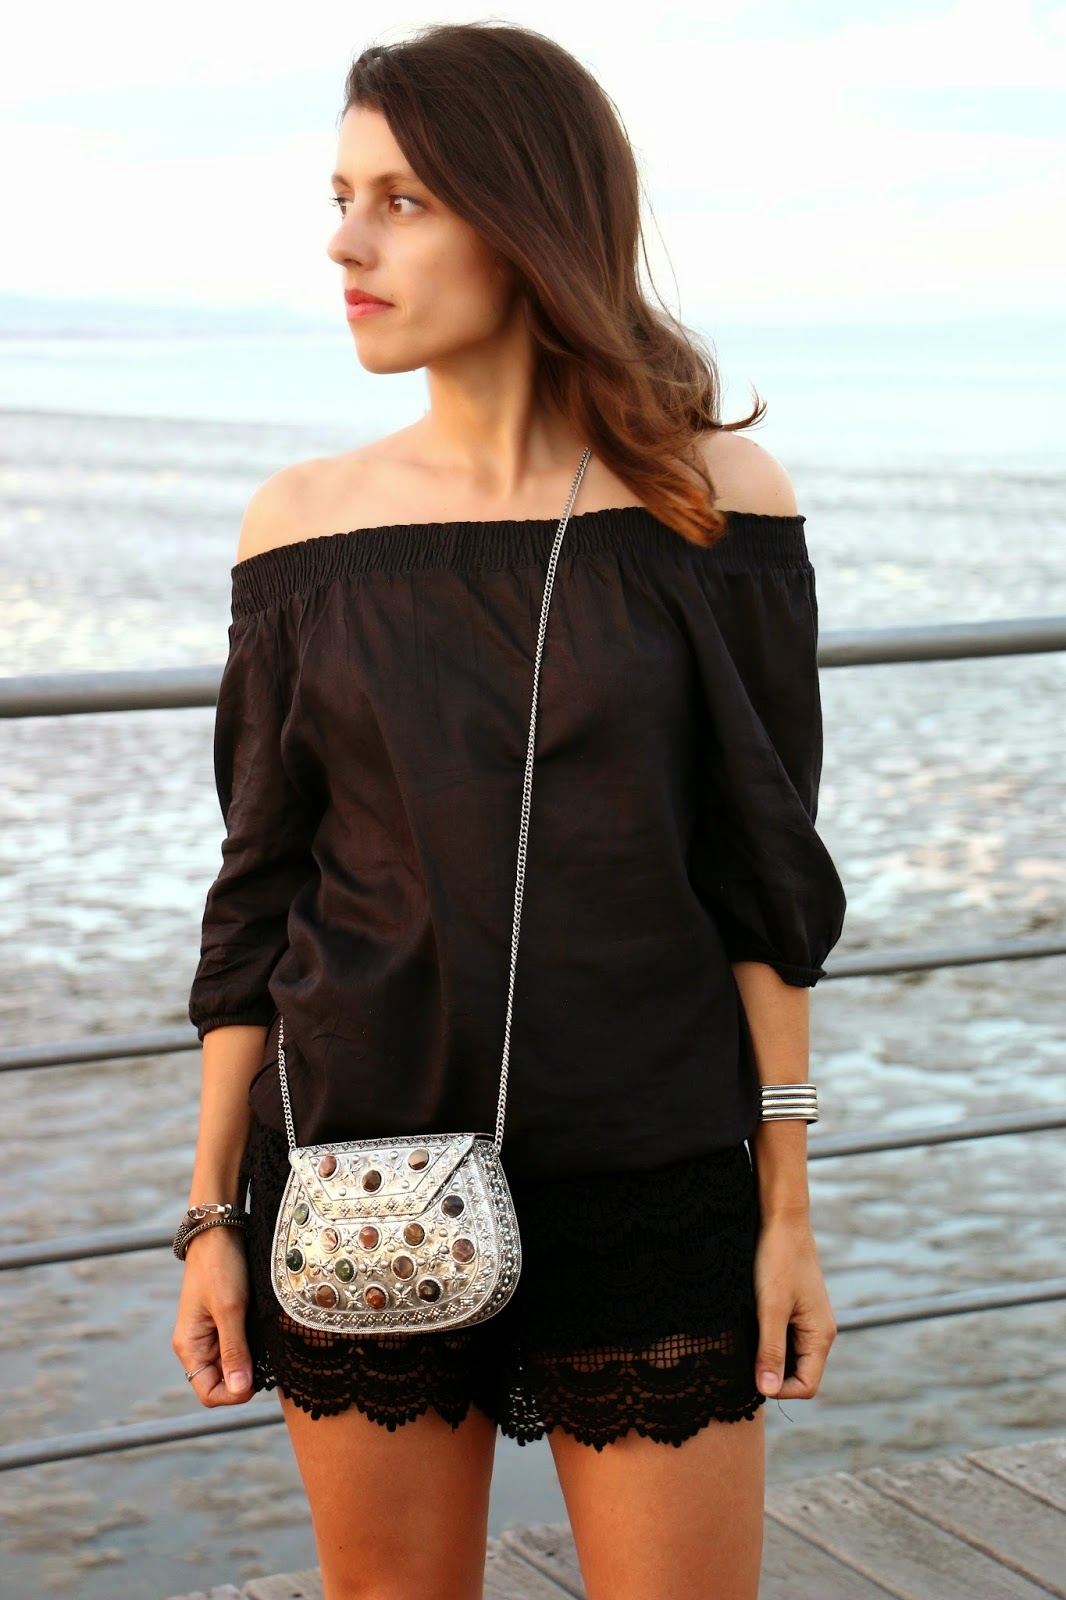 http://ilovefitametrica.blogspot.pt/2014/08/off-shoulder-lace-shorts.html